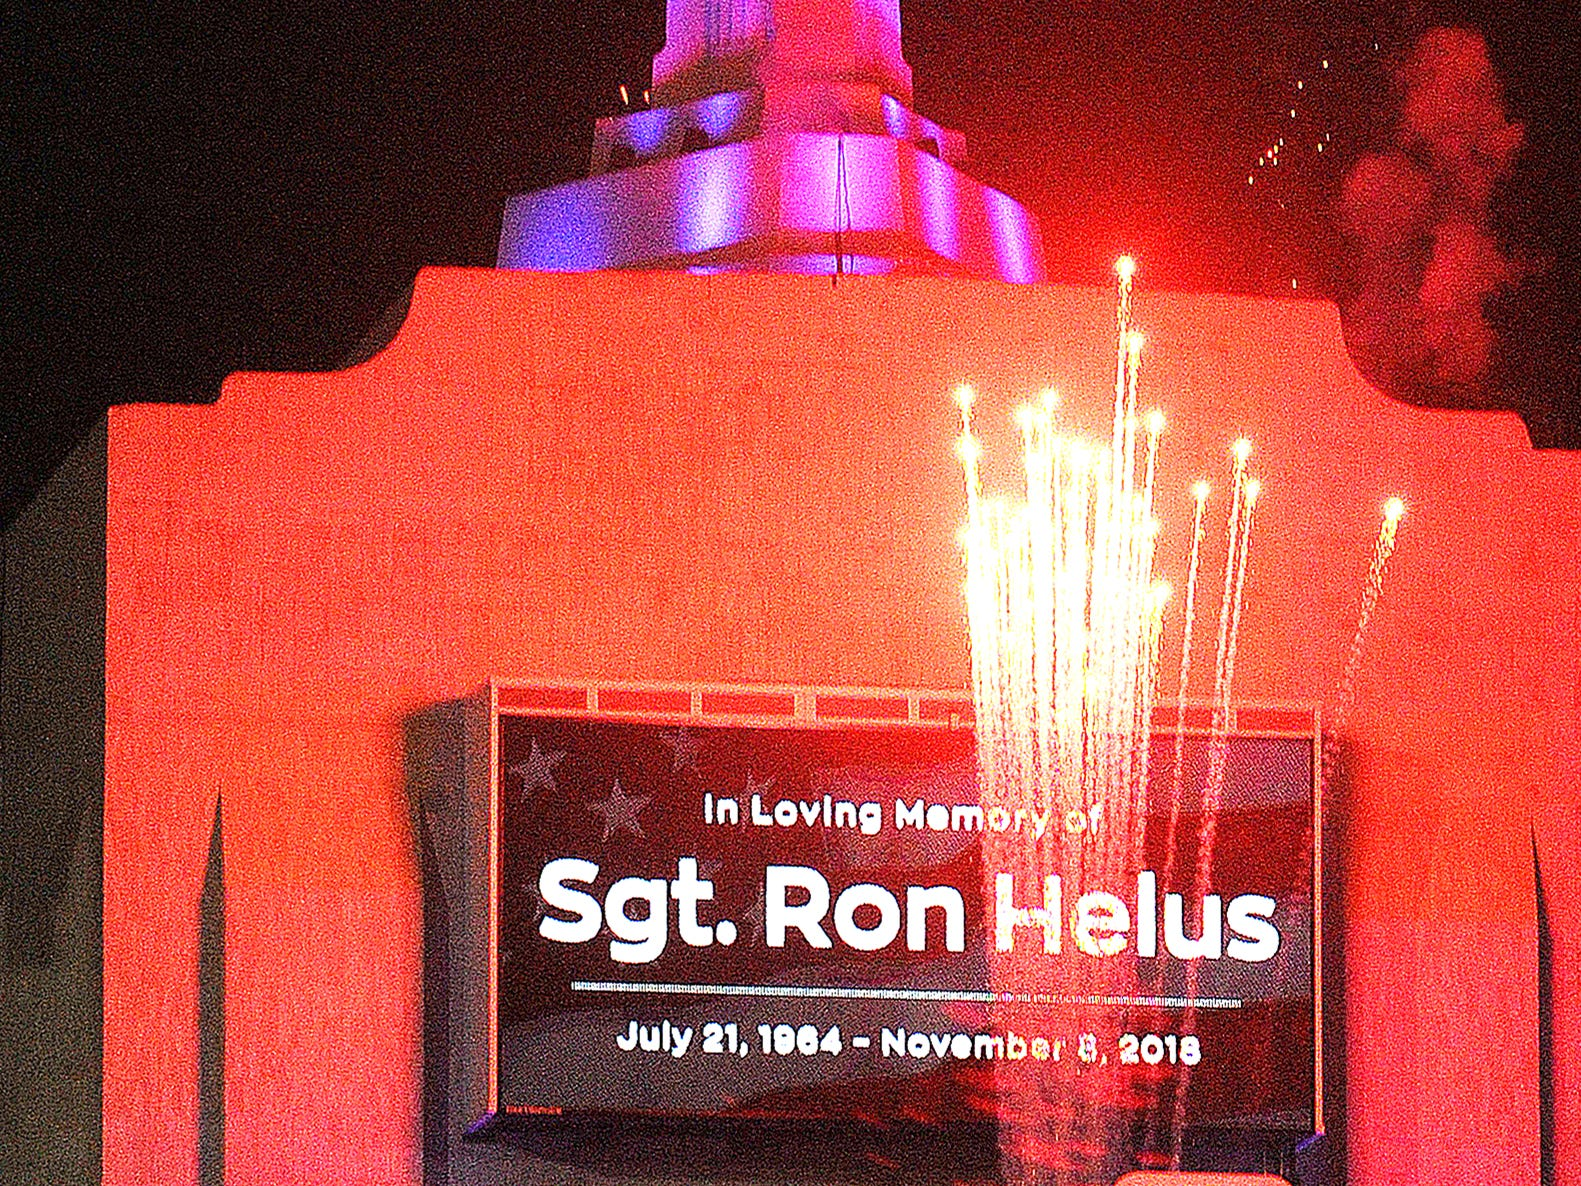 The Coliseum torch is lit in honor of Ventura County Sheriff's Department Sgt. Ron Helu before Monday night's game against the Chiefs. Sgt. Helus was killed in the Borderline Bar & Grill shooting.